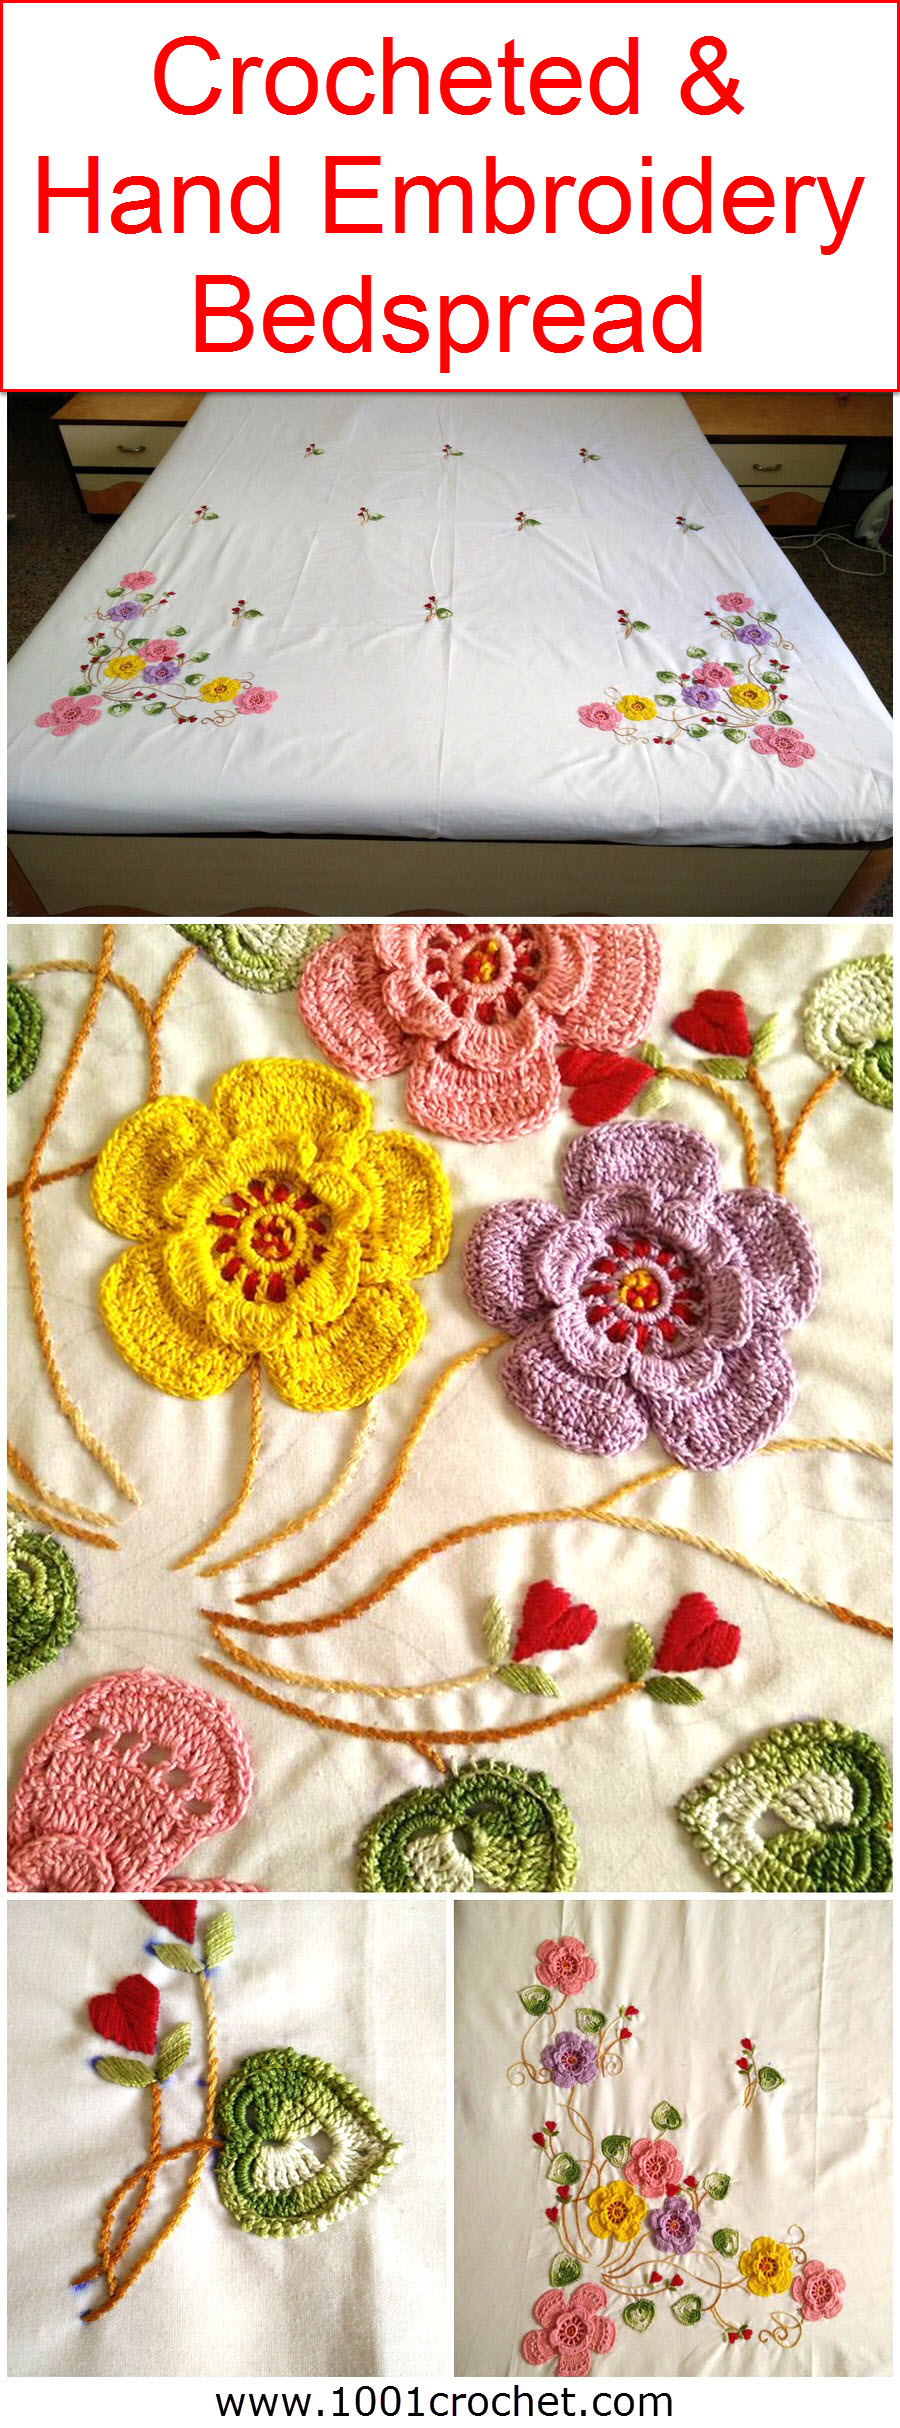 crocheted-hand-embroidery-bedspread